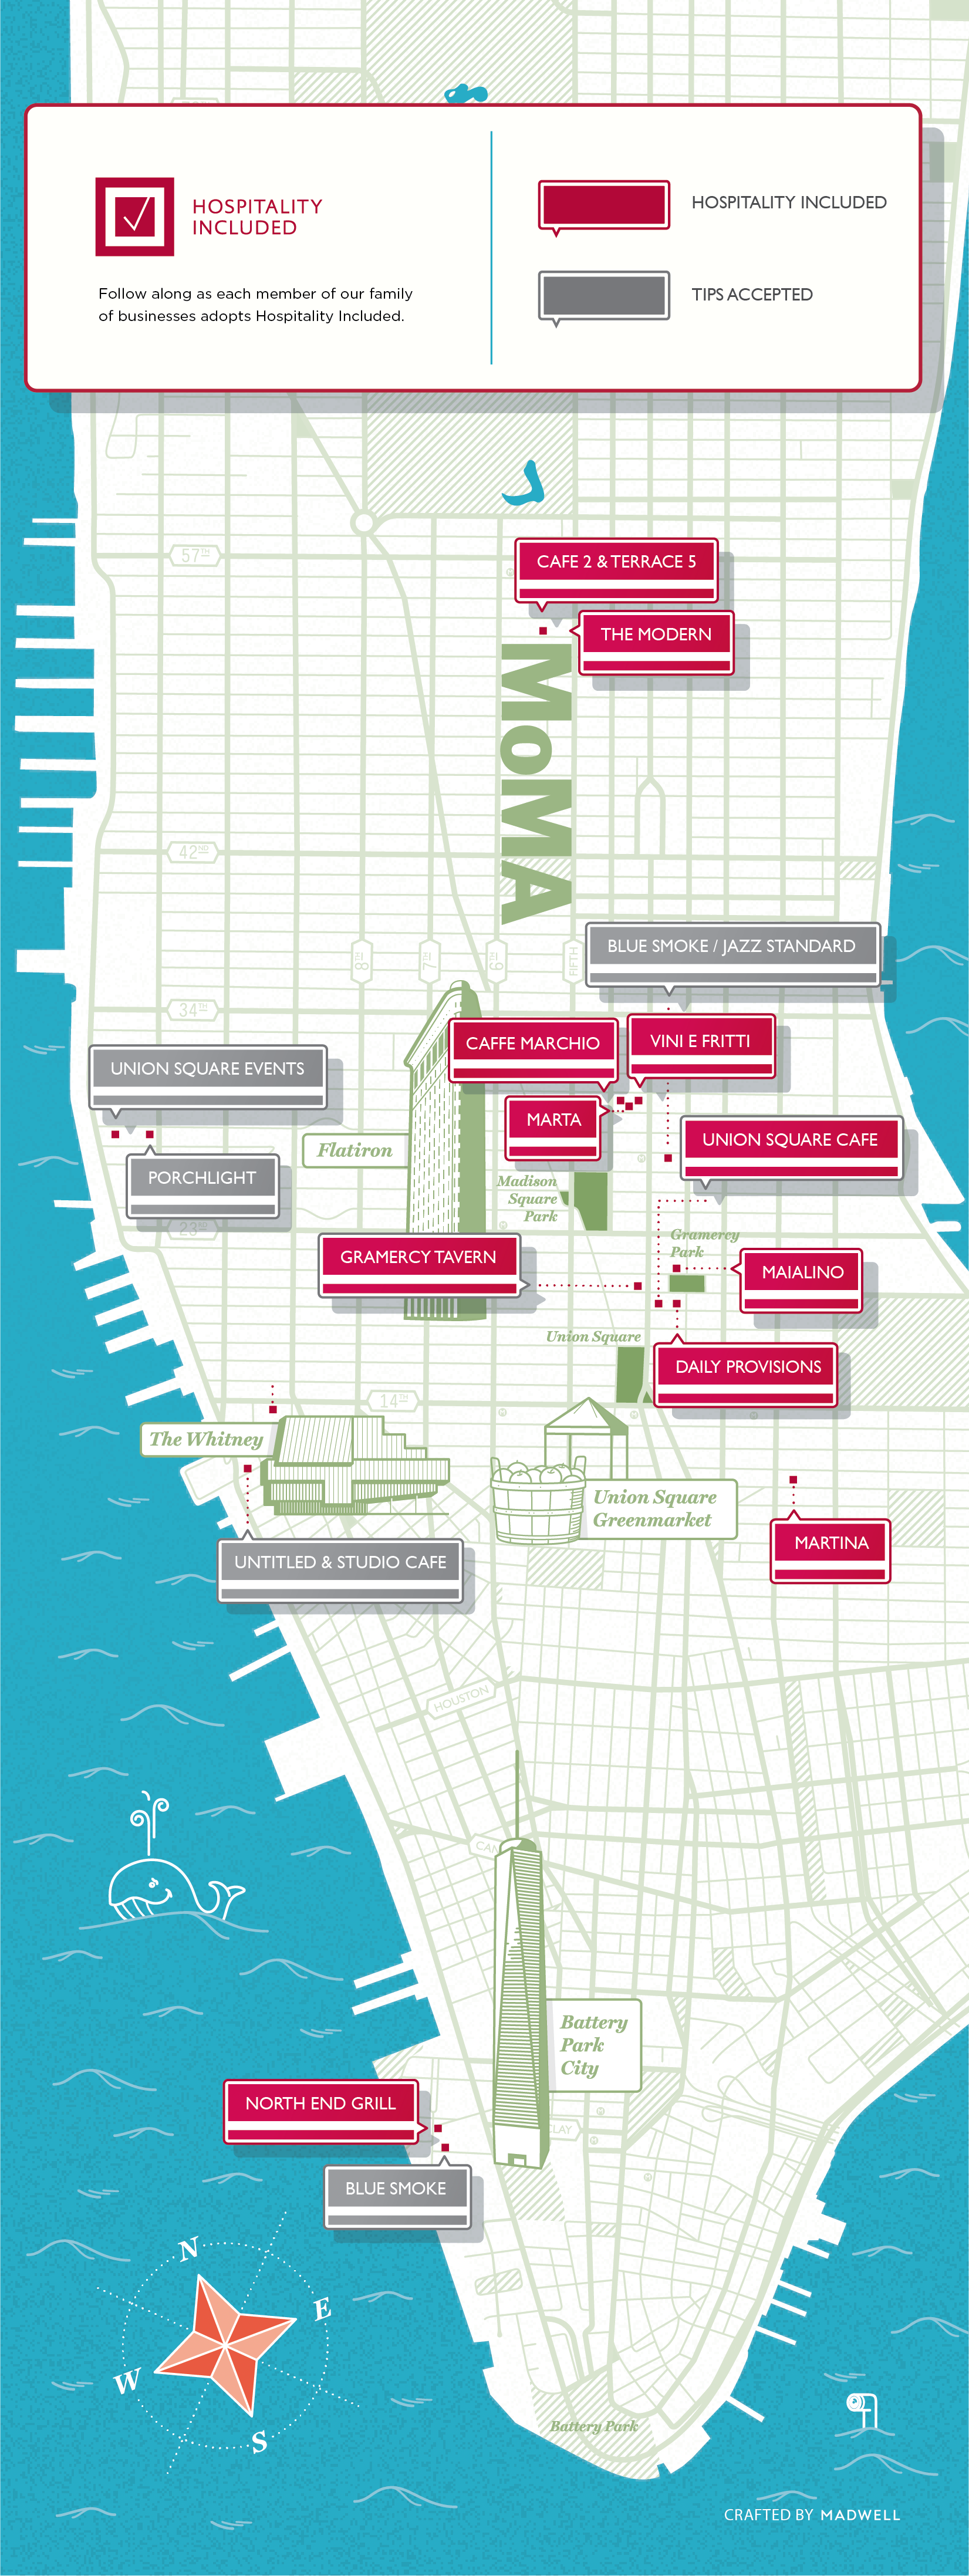 Map of the restaurants that have adopted Hospitality Included: currently Cafe 2 at MoMA, Caffe Marchio, Daily Provisions, Gramercy Tavern, Maialino, Marta, Martina, North End Grill, The Modern, Union Square Cafe, and Vini e Fritti.